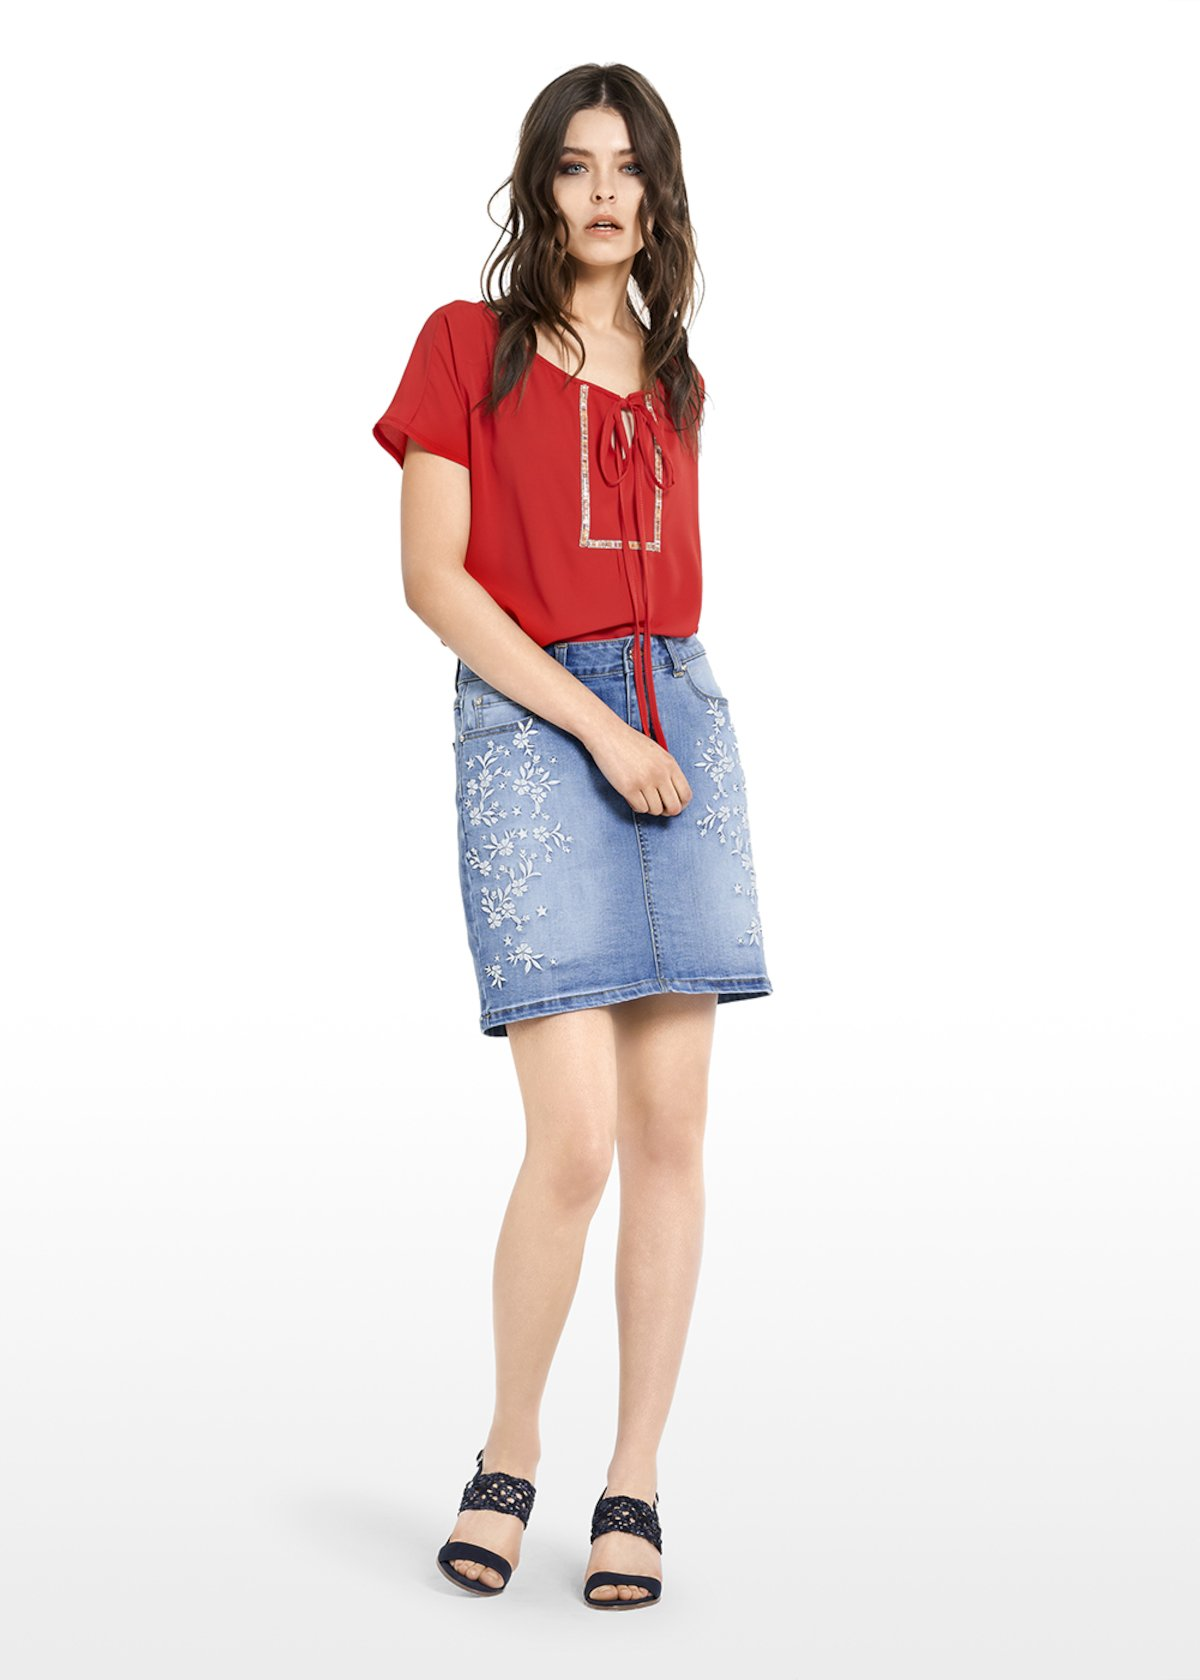 Gecky denim skirt with embroidered flowers - Light Denim - Woman - Category image